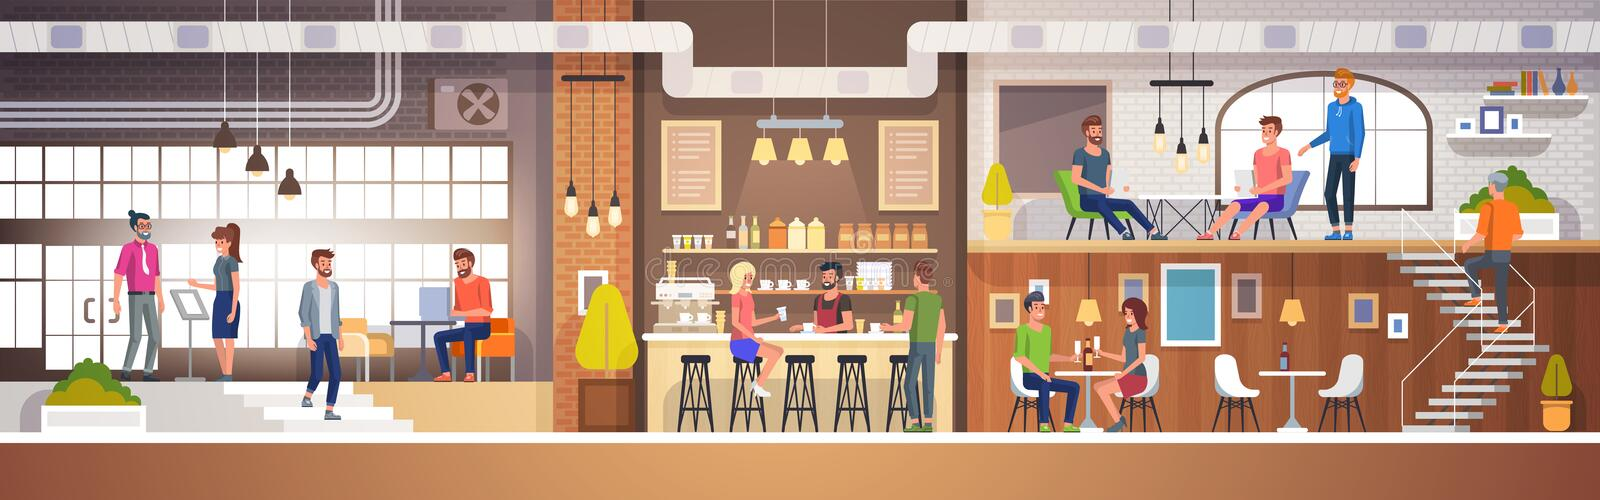 Modern Cafe Interior in loft style. full of People. Restaurant Flat Vector Illustration. royalty free illustration